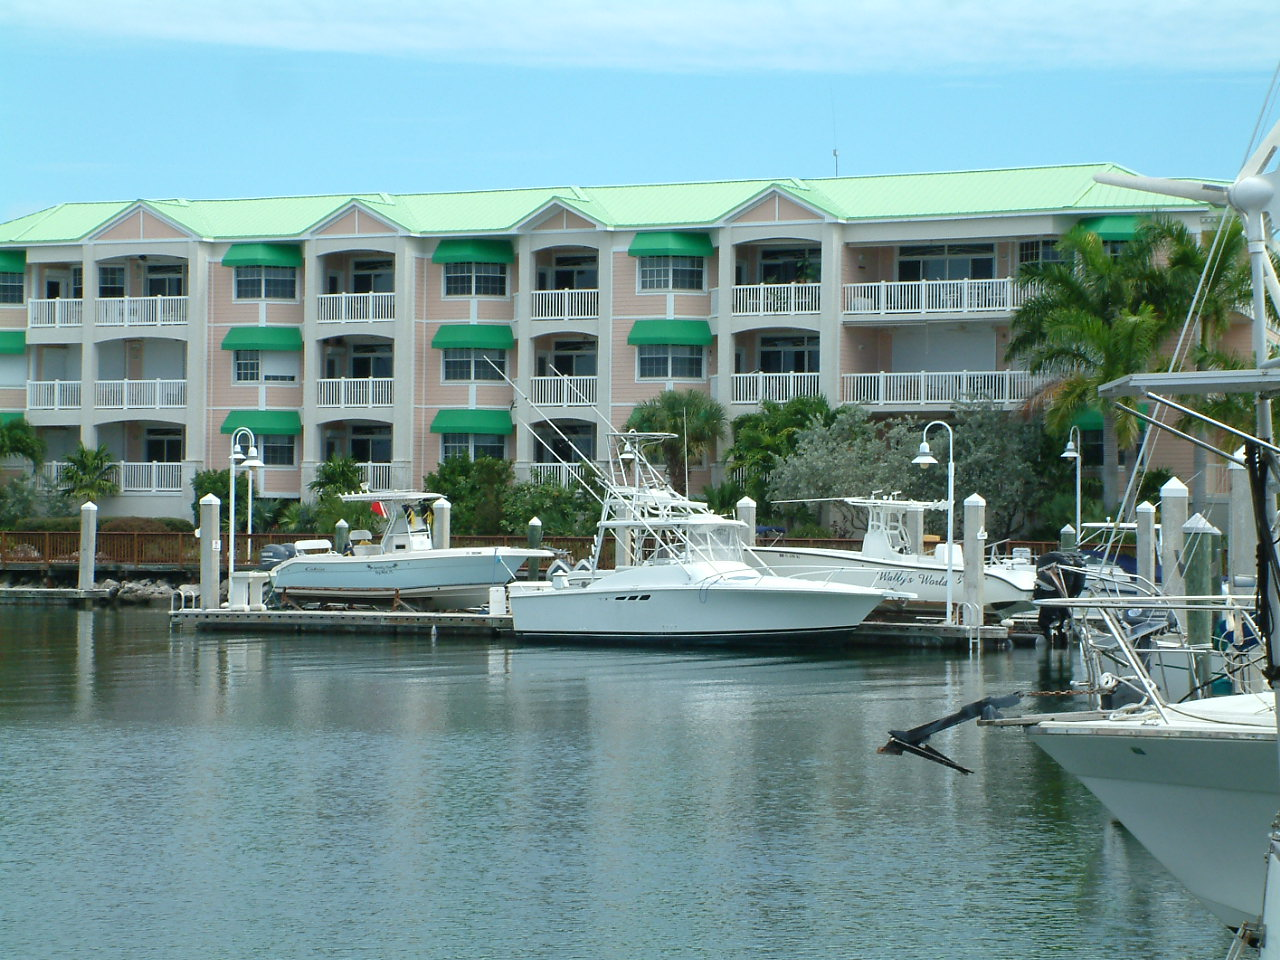 key west sunset marina boating opportunities